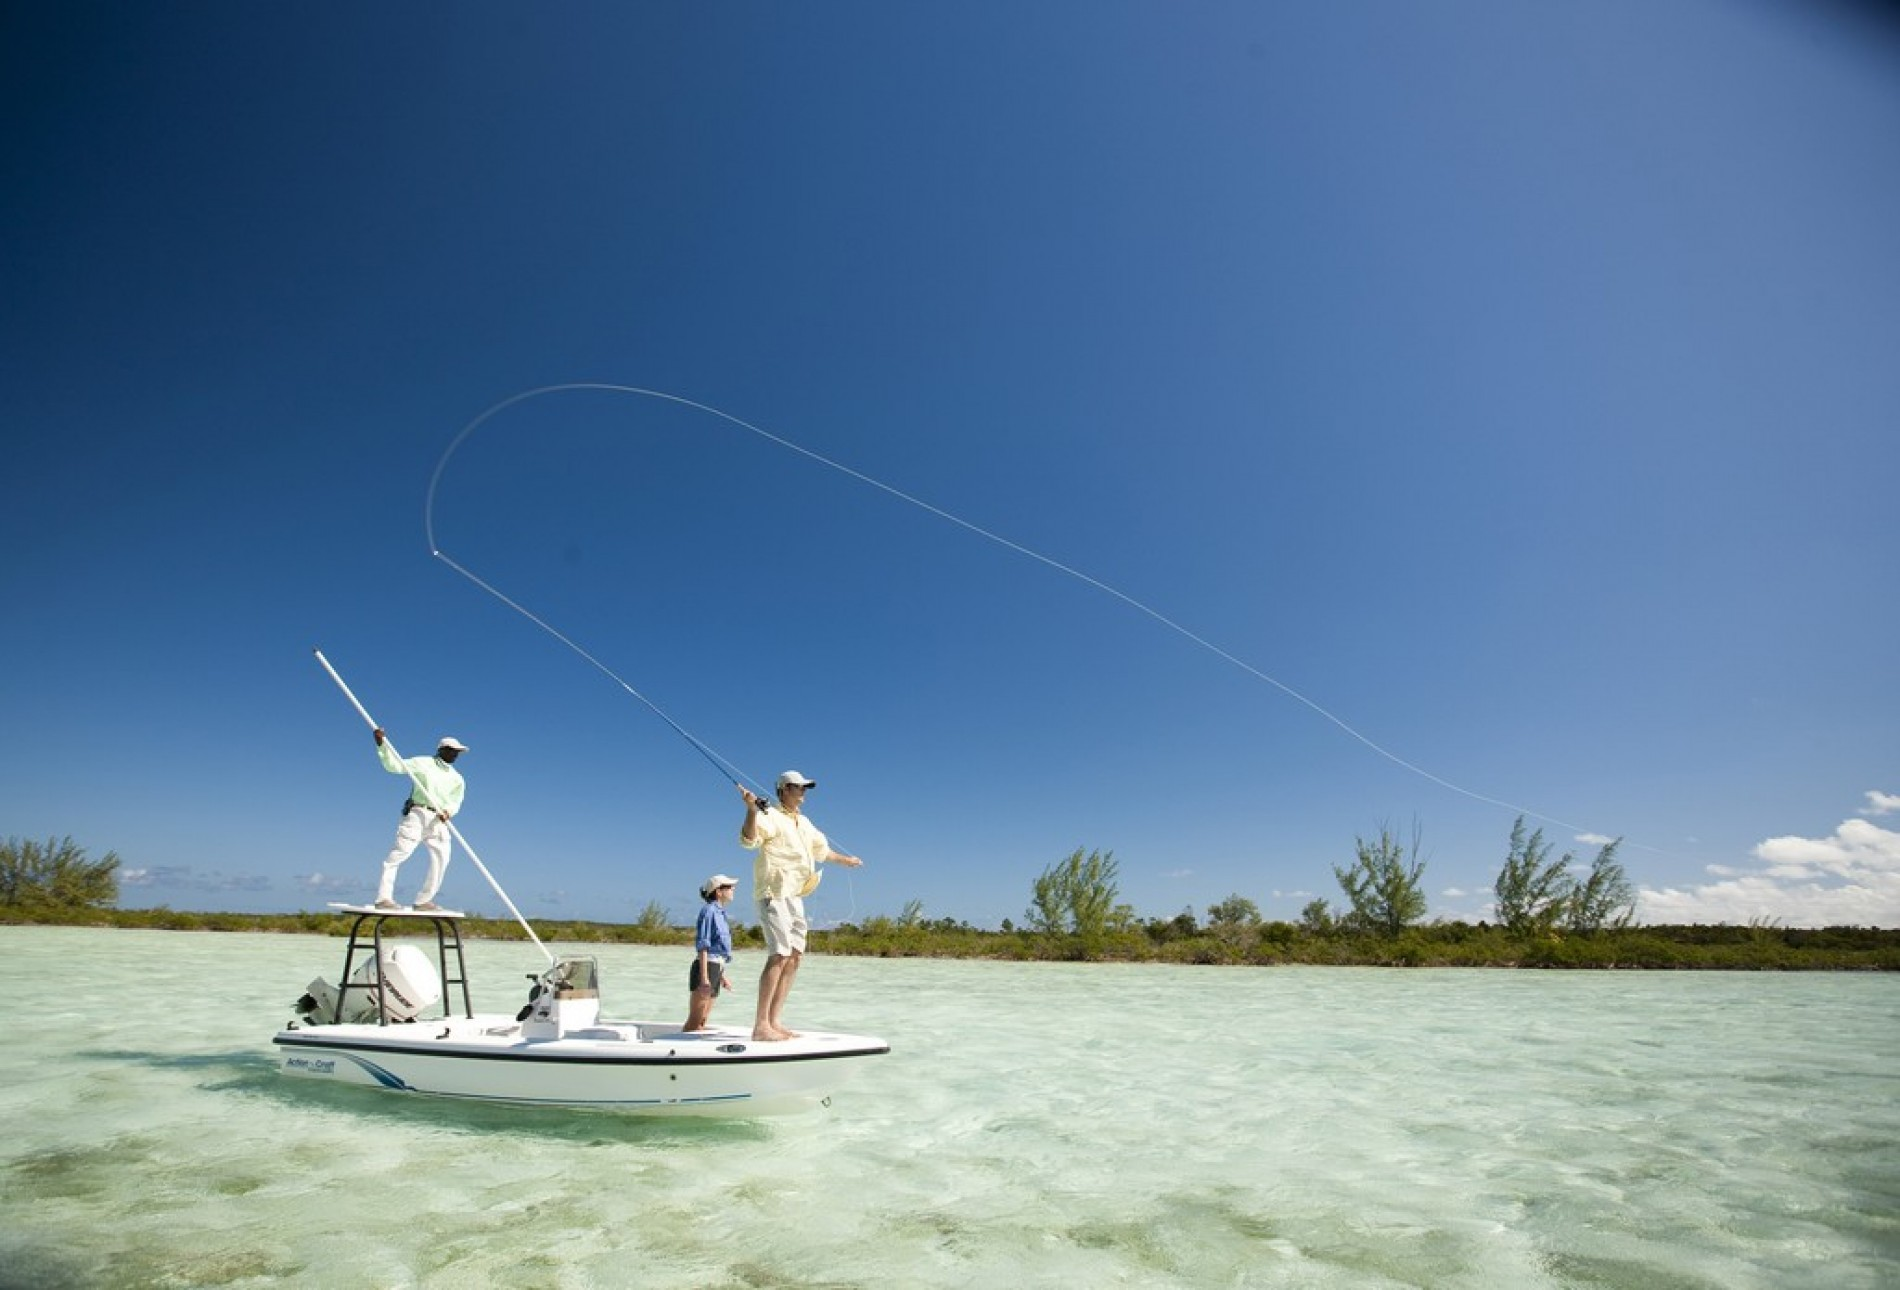 Birdsnest villa tiamo resort luxury resort in the bahamas for Bahamas fishing license